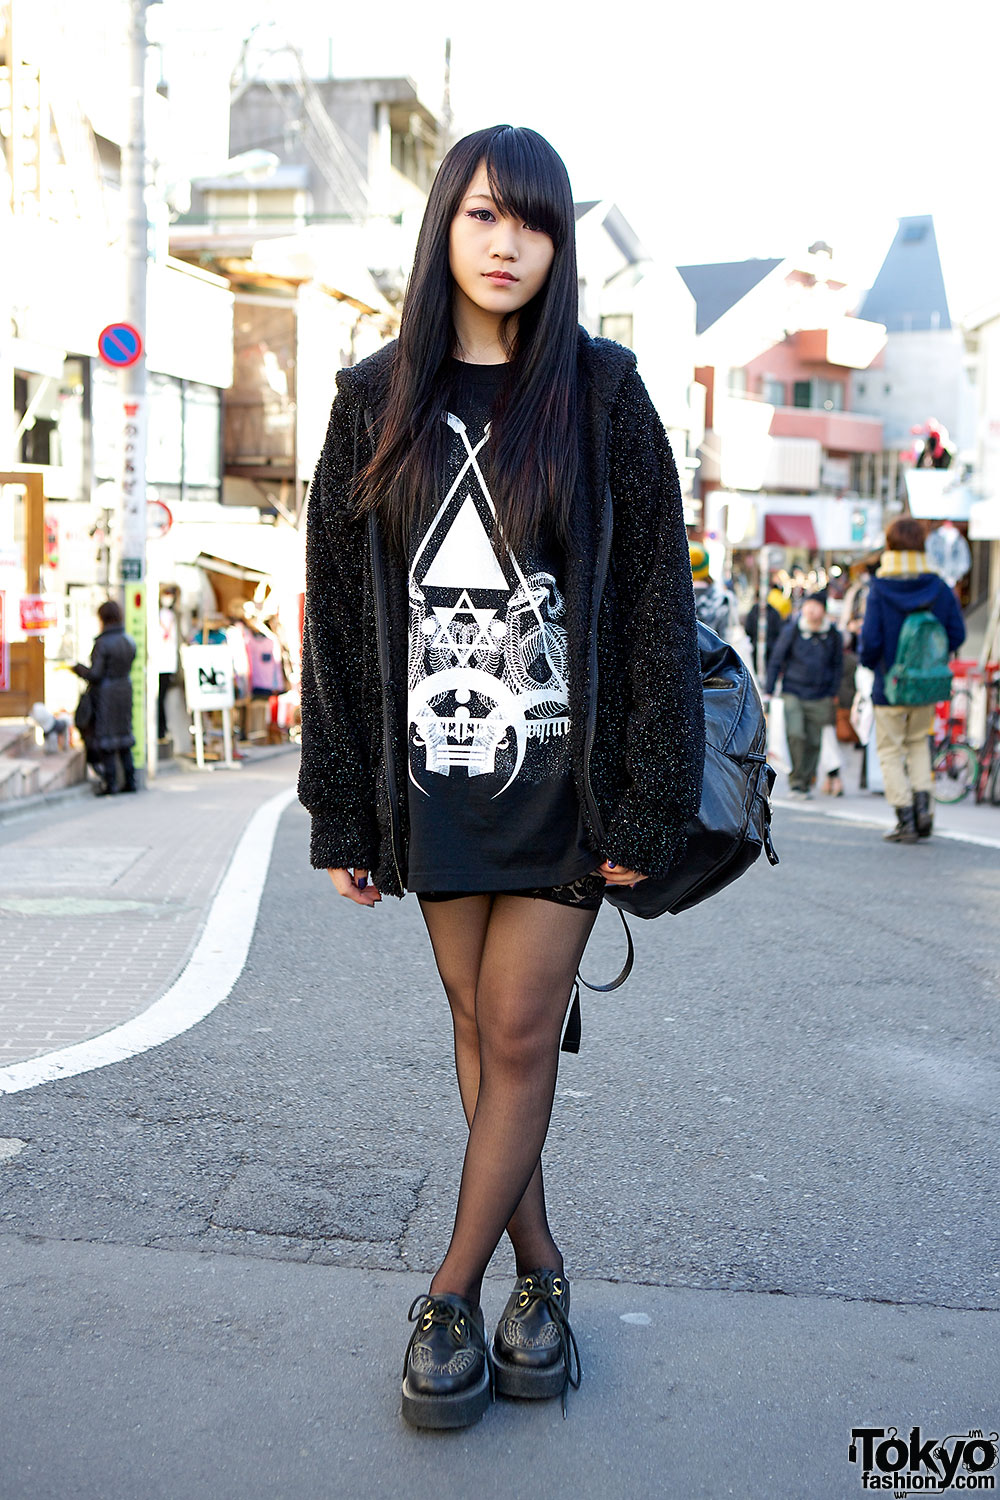 Monomania Hoodie Avantgarde Harajuku Stockings Boy London Creepers